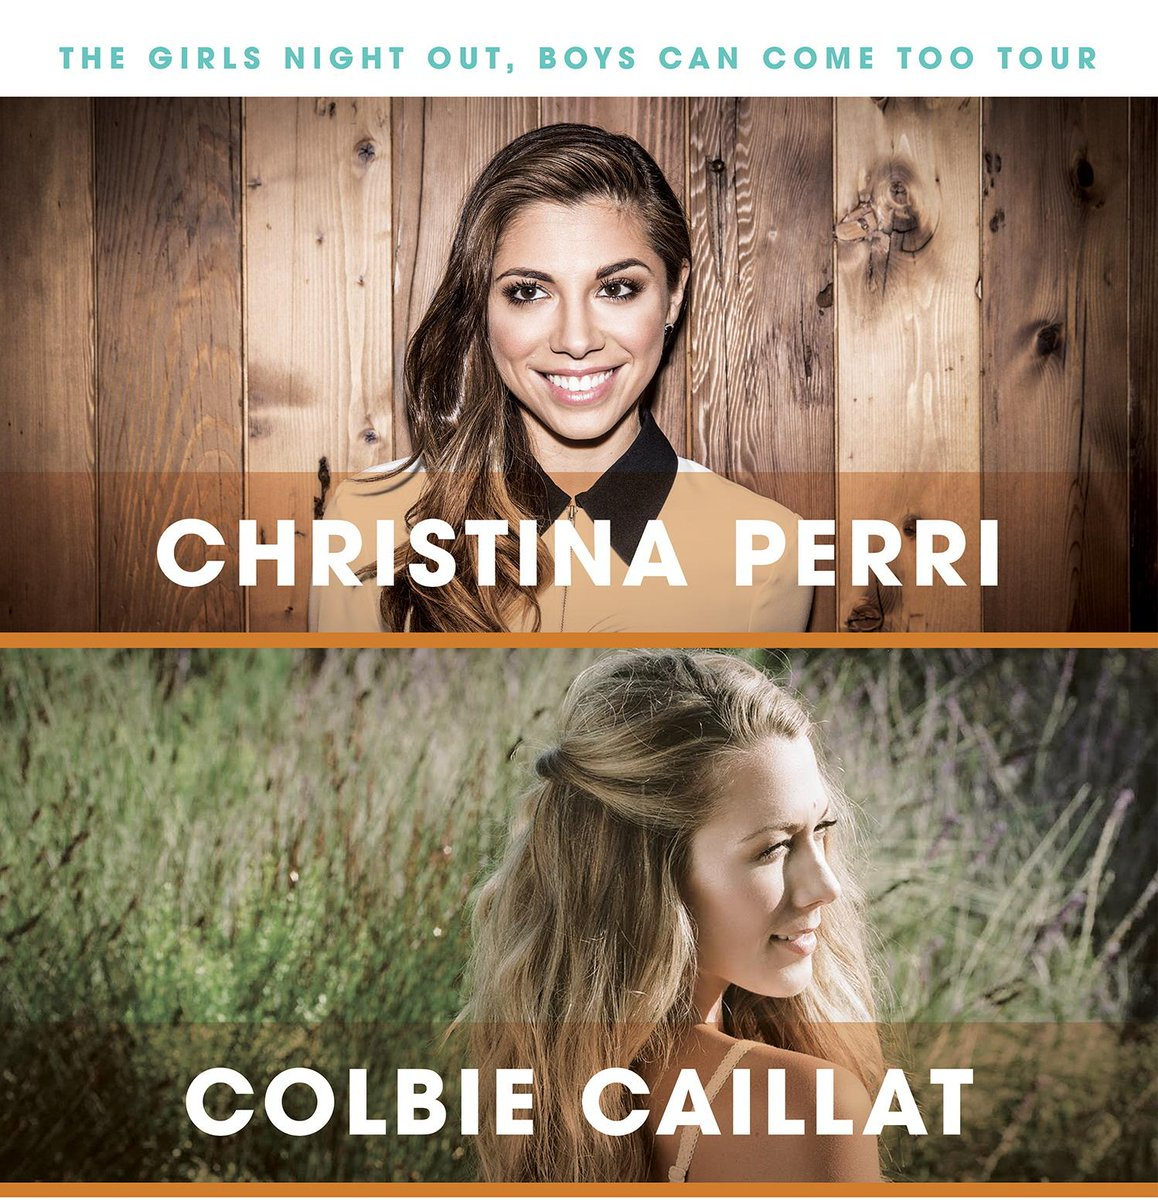 Tonight Christina Perri and Colbie Caillat perform at JBL Live at Pier 97. Doors open at 5pm on Pier 97 at W. 57th St http://t.co/eHefrUO4lE